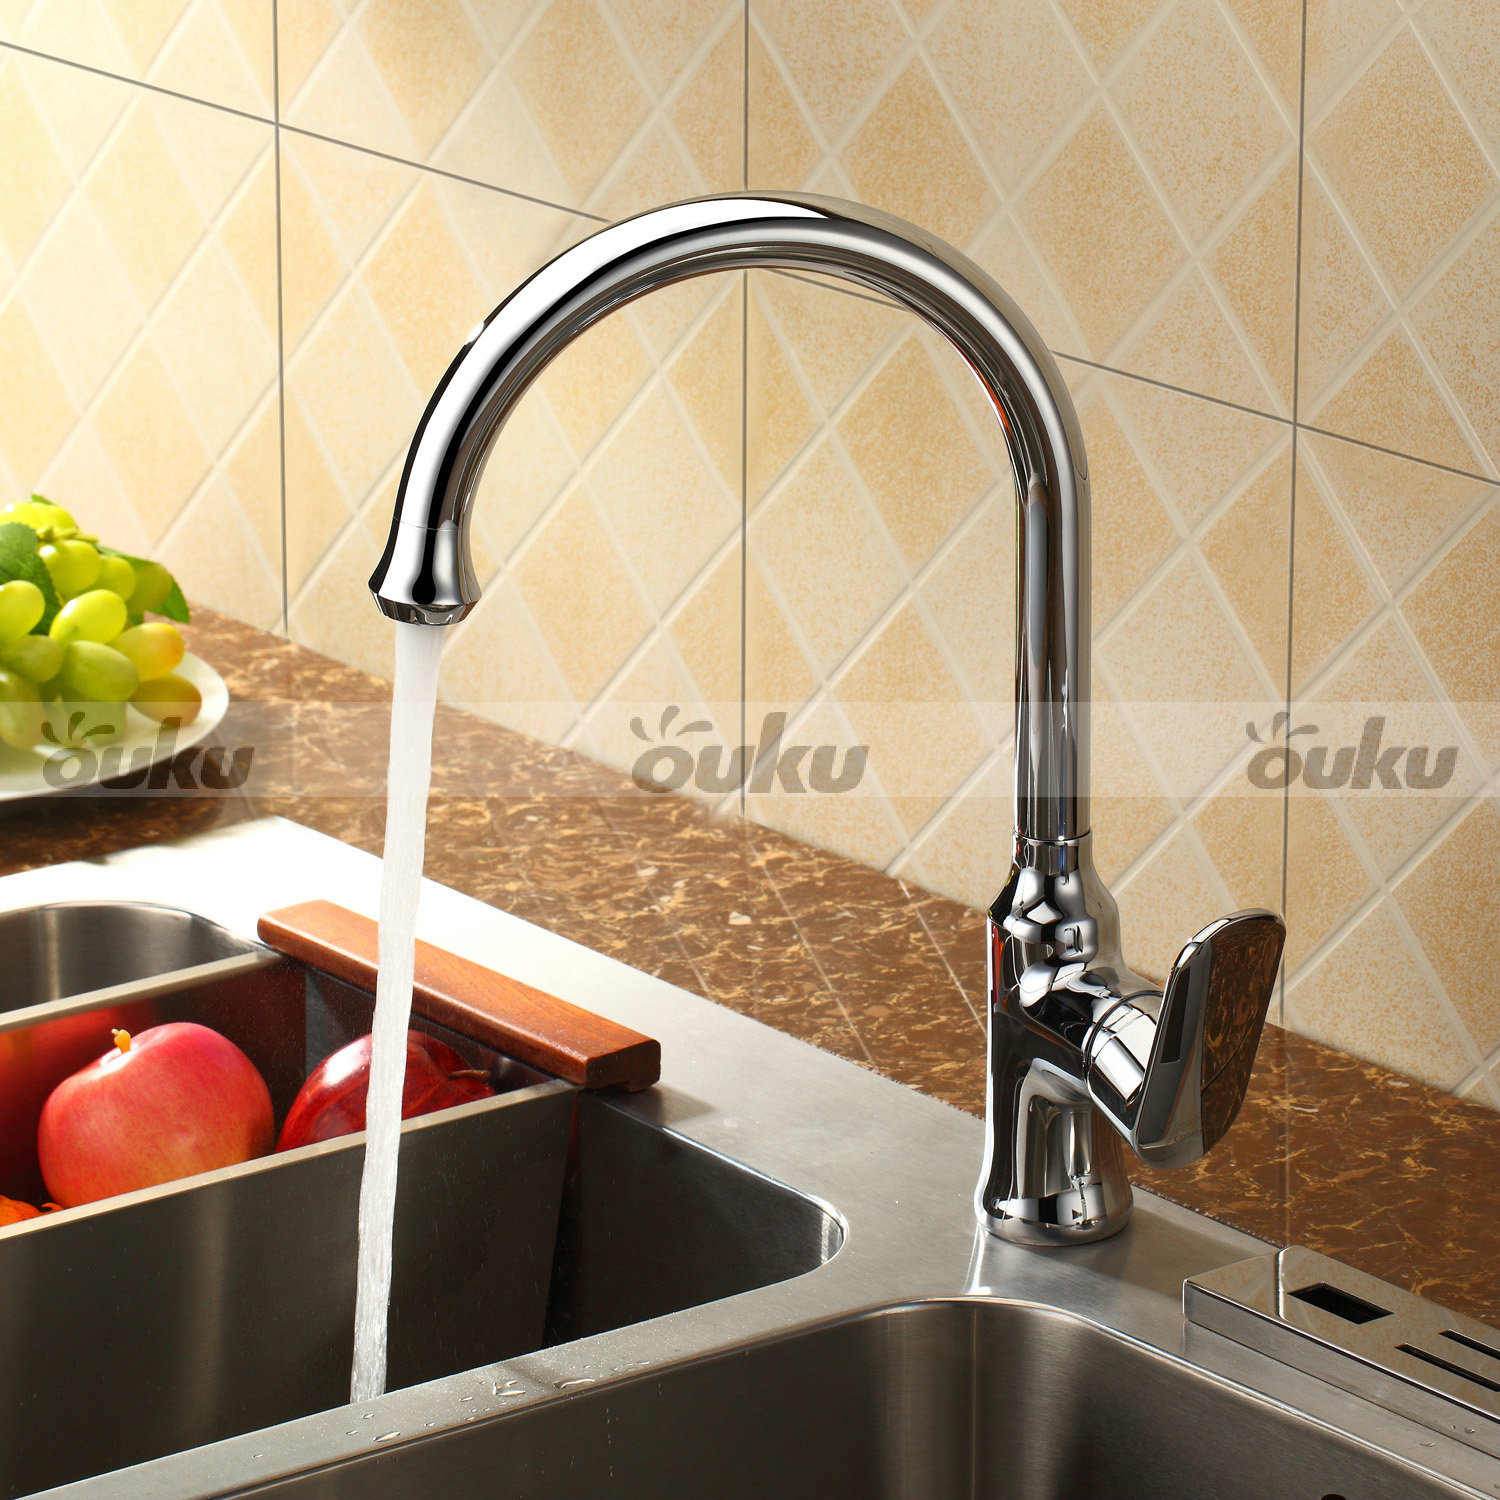 Clearance New Modern Chrome Brass Kitchen Faucet Single Handle Sink Mixer Tap Ebay